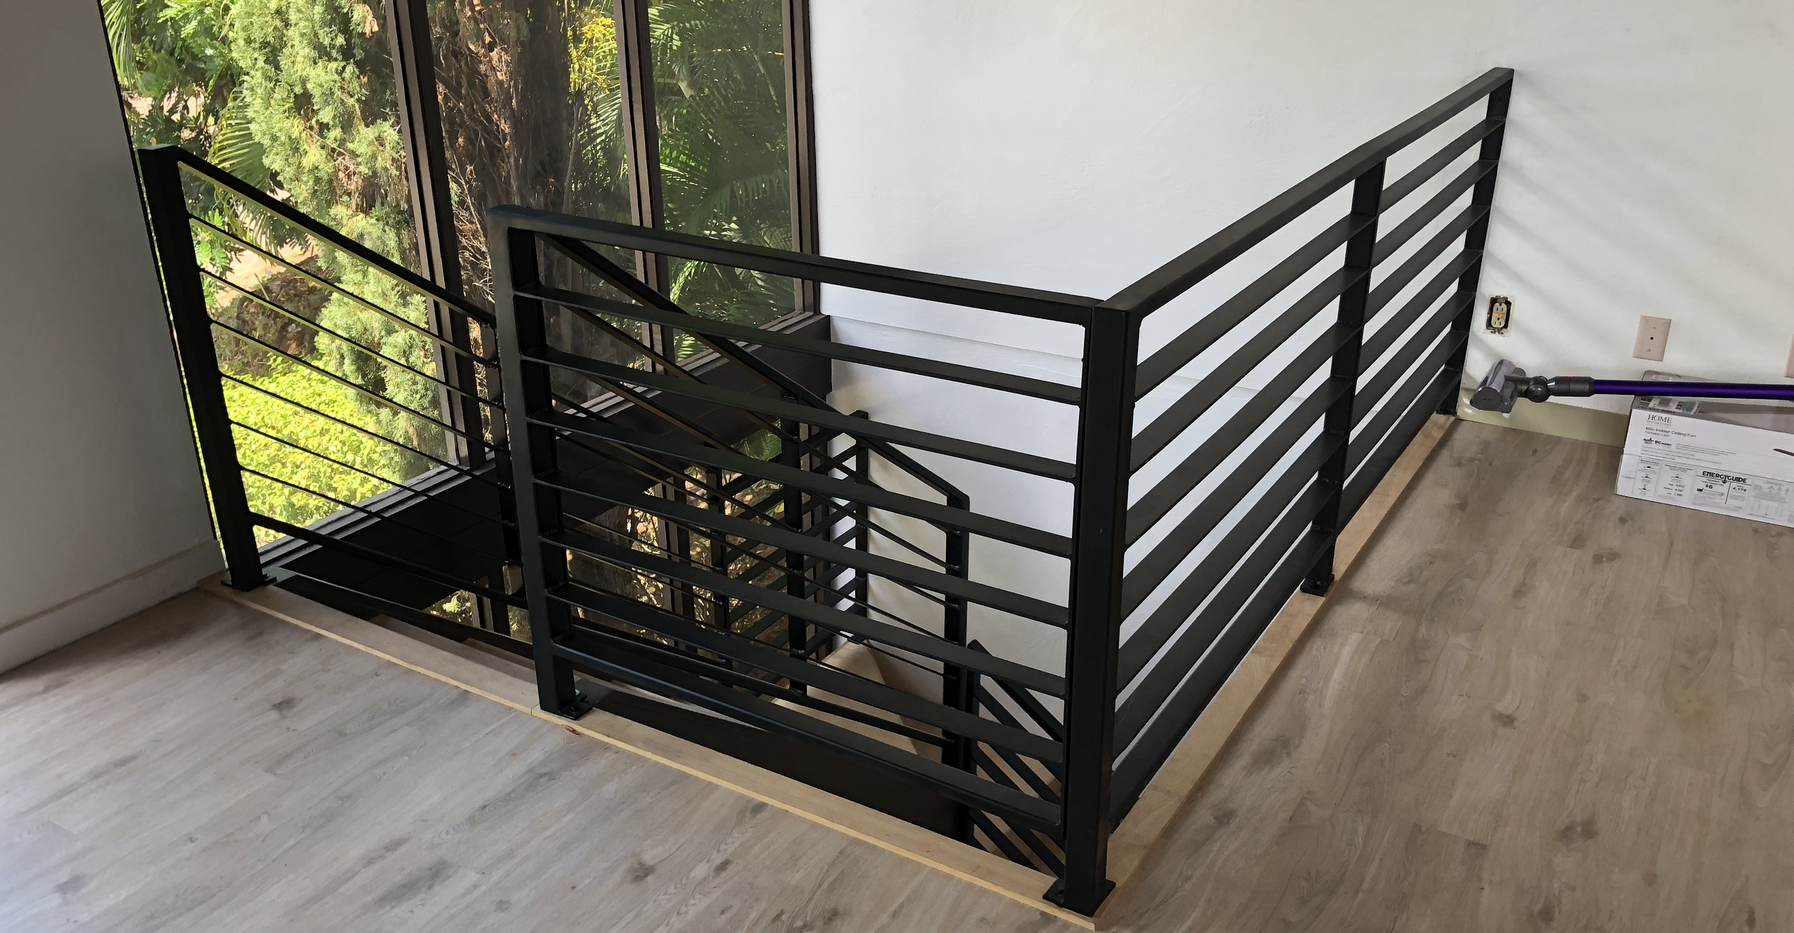 QuinnMorrissetteStudio_CustomIronRailing